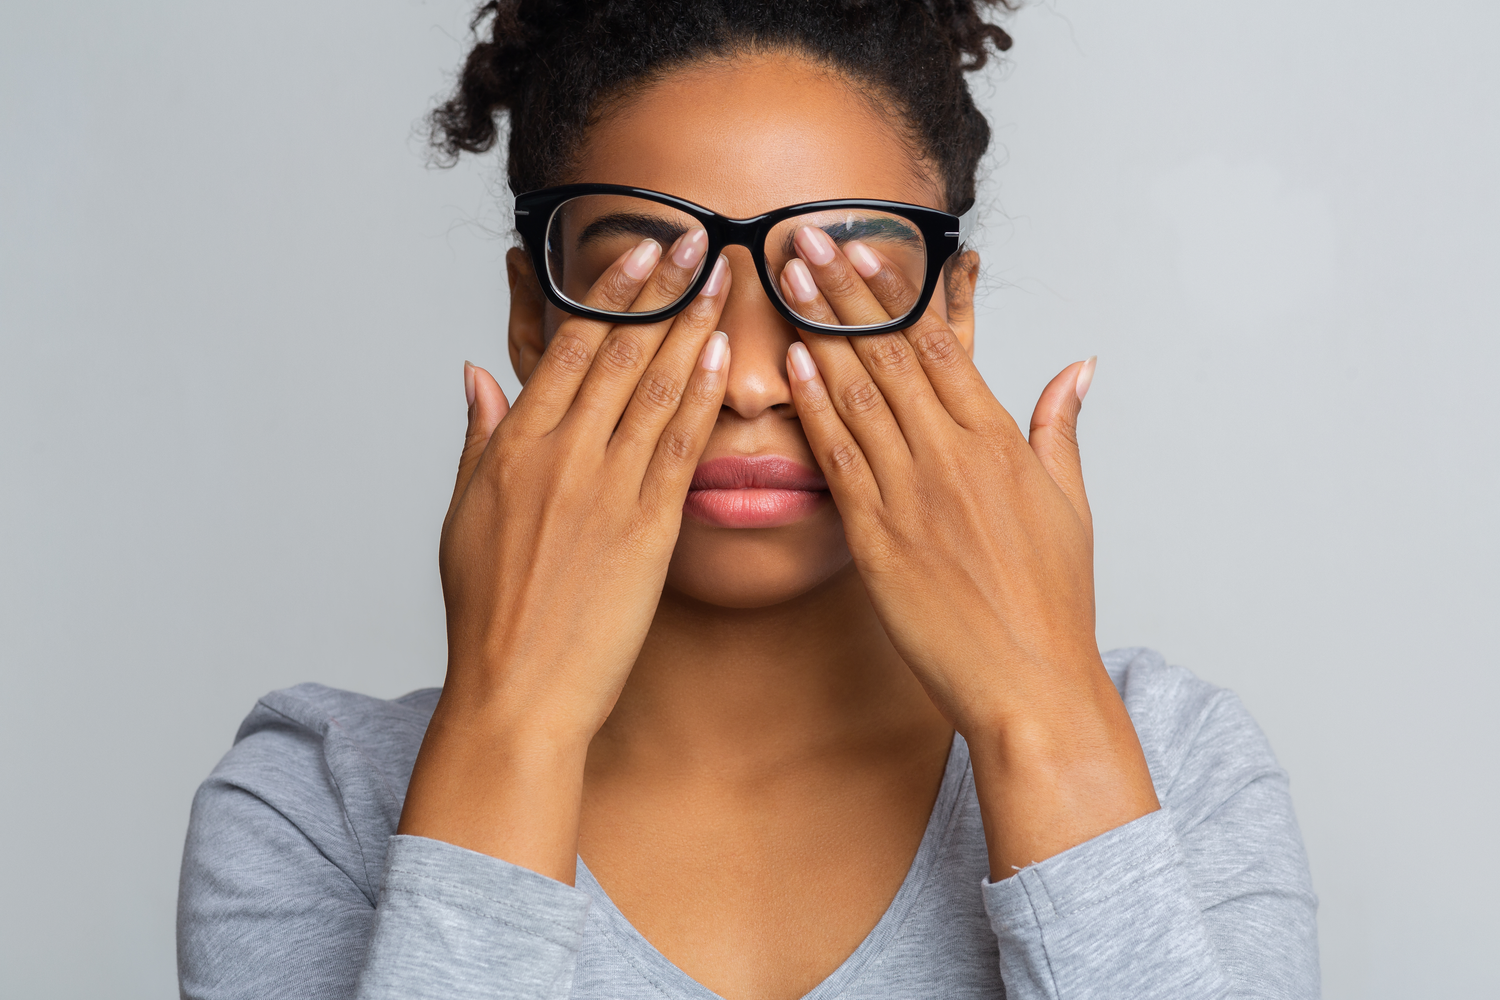 Preventing and Treating Ocular Allergies